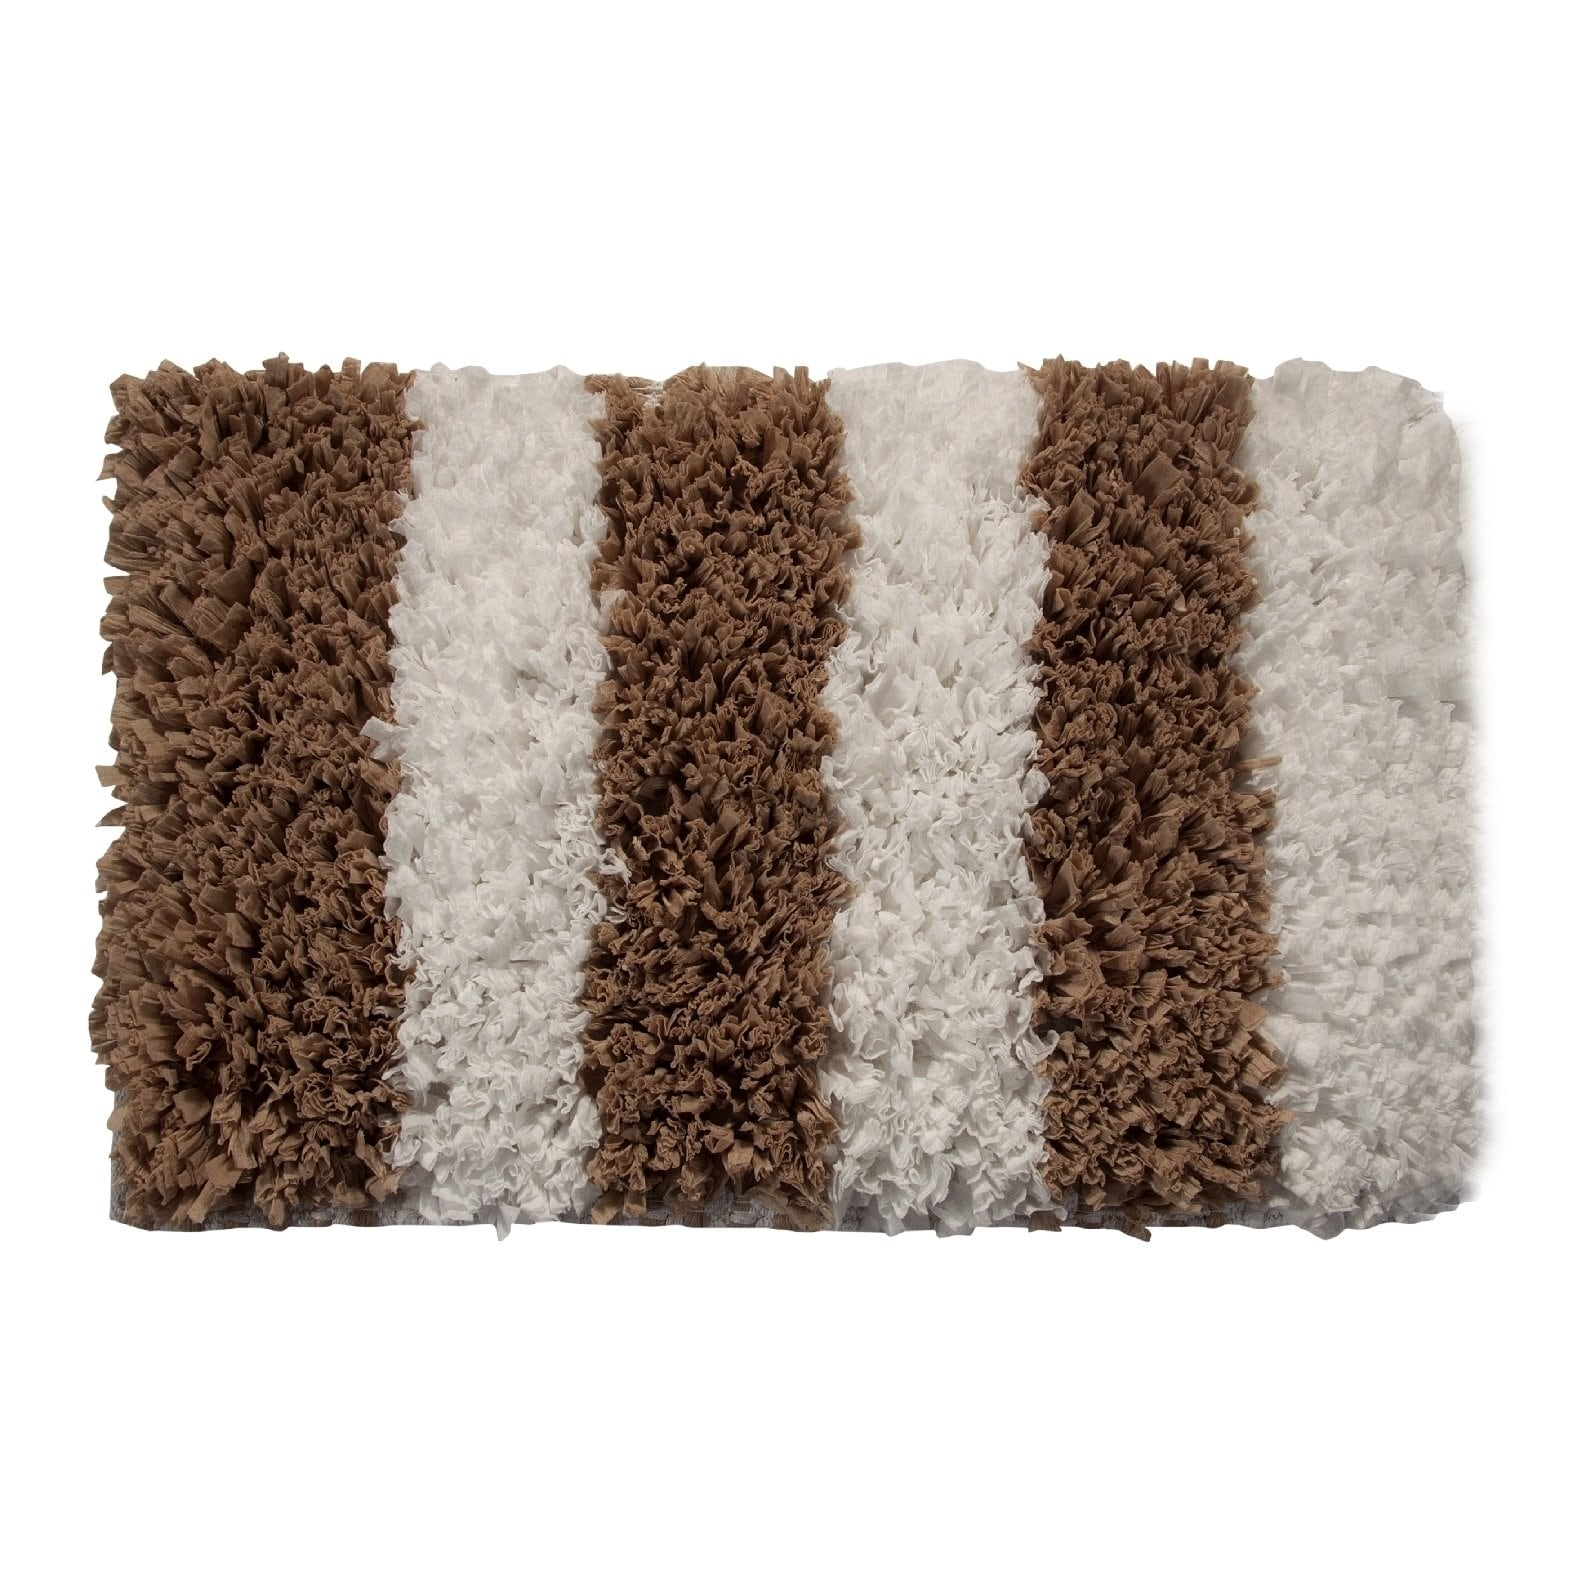 Bath Rug Saffron Fabs Polyester Viscose Cotton Handloom Woven 50x30 Inches Color White and Beige GSF 200 Patte